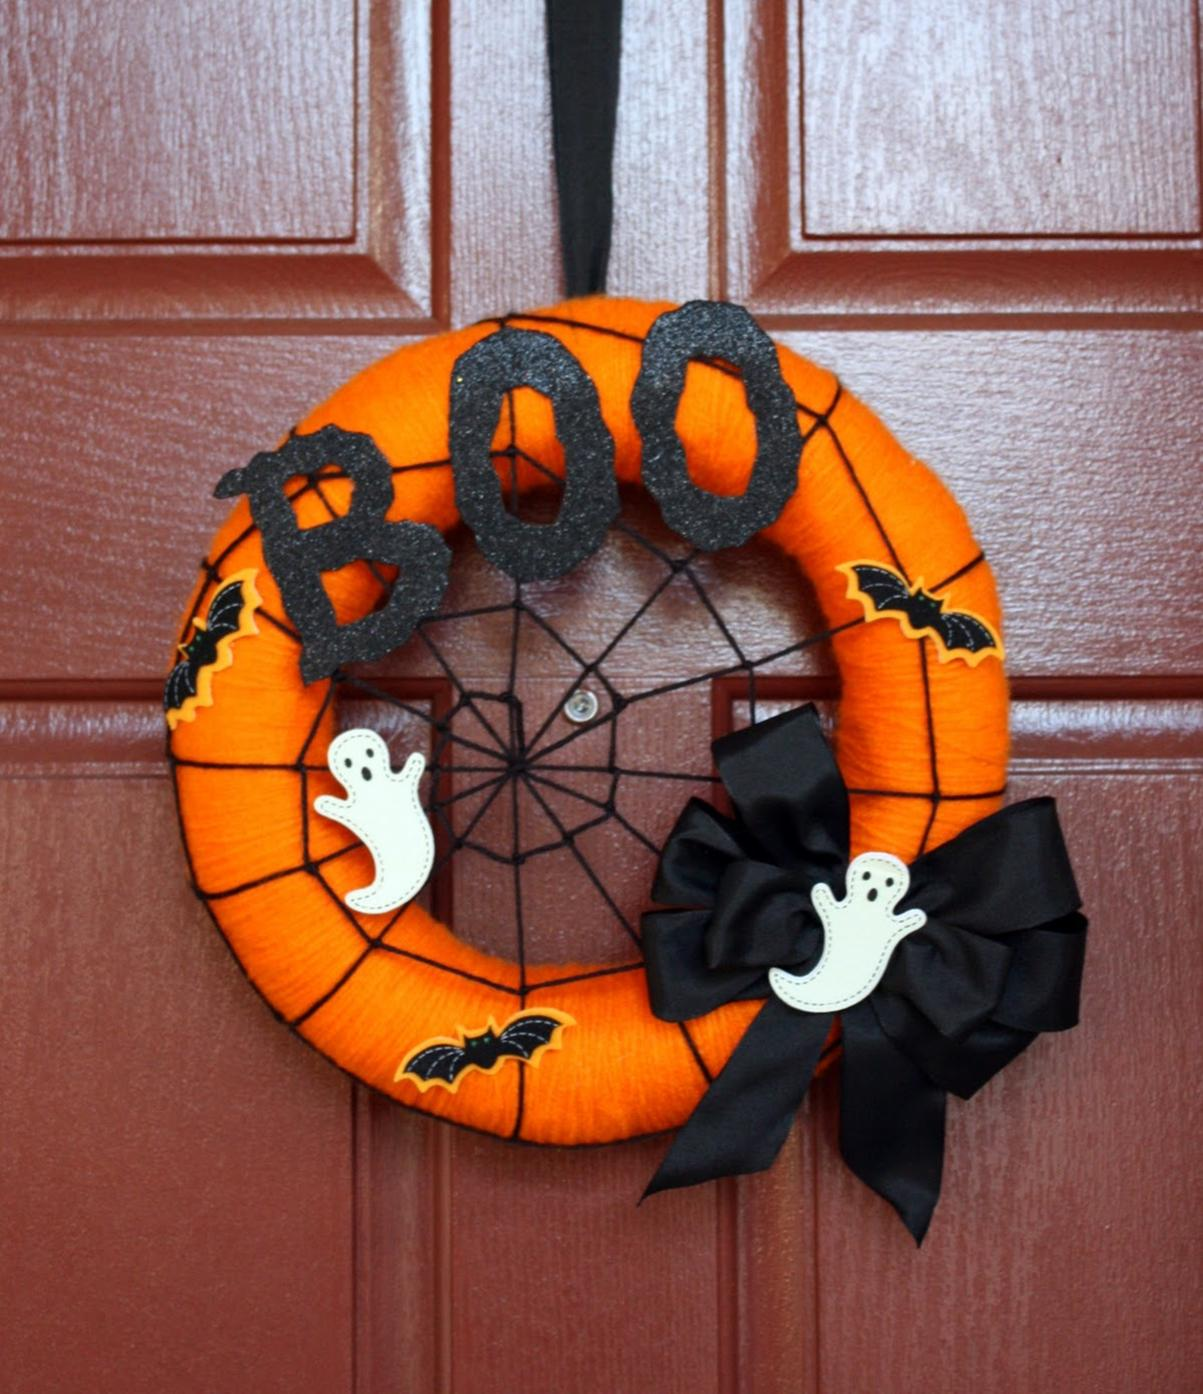 ... the Wall: Halloween Wreaths, Ghosts, Trees and Door Decor-A Must See